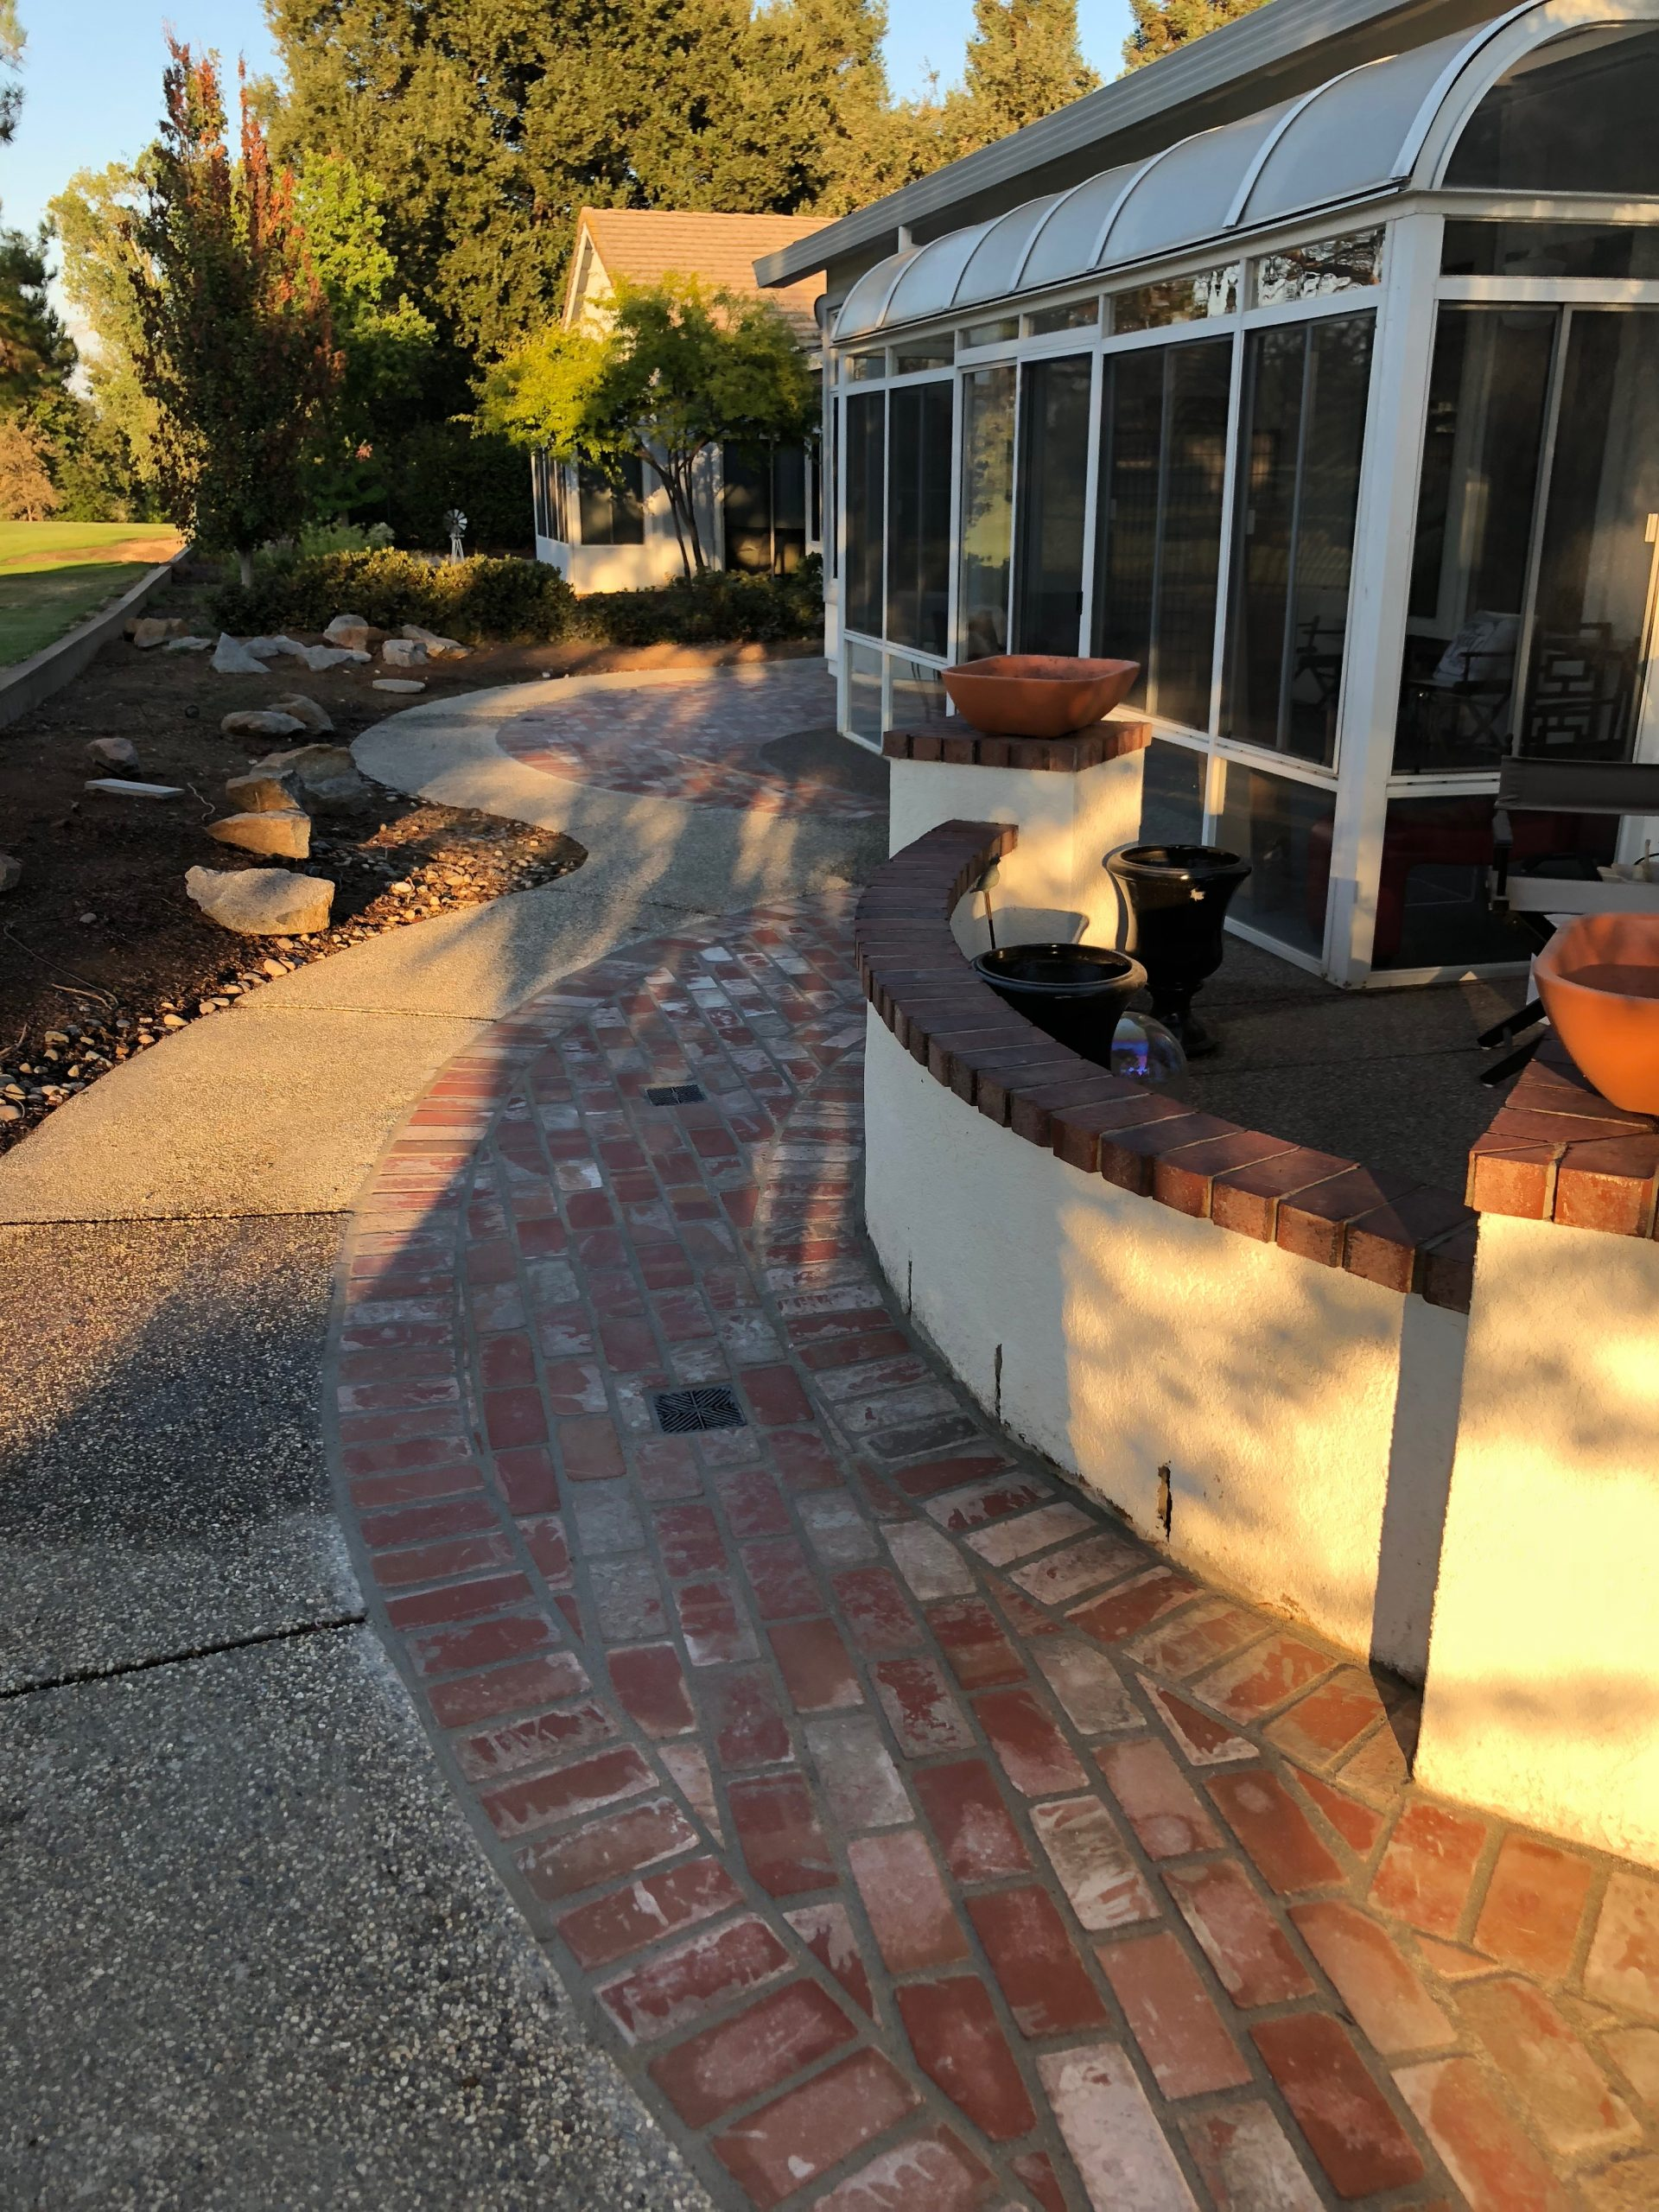 The photo shows the finished concrete work in Pleasanton, CA.